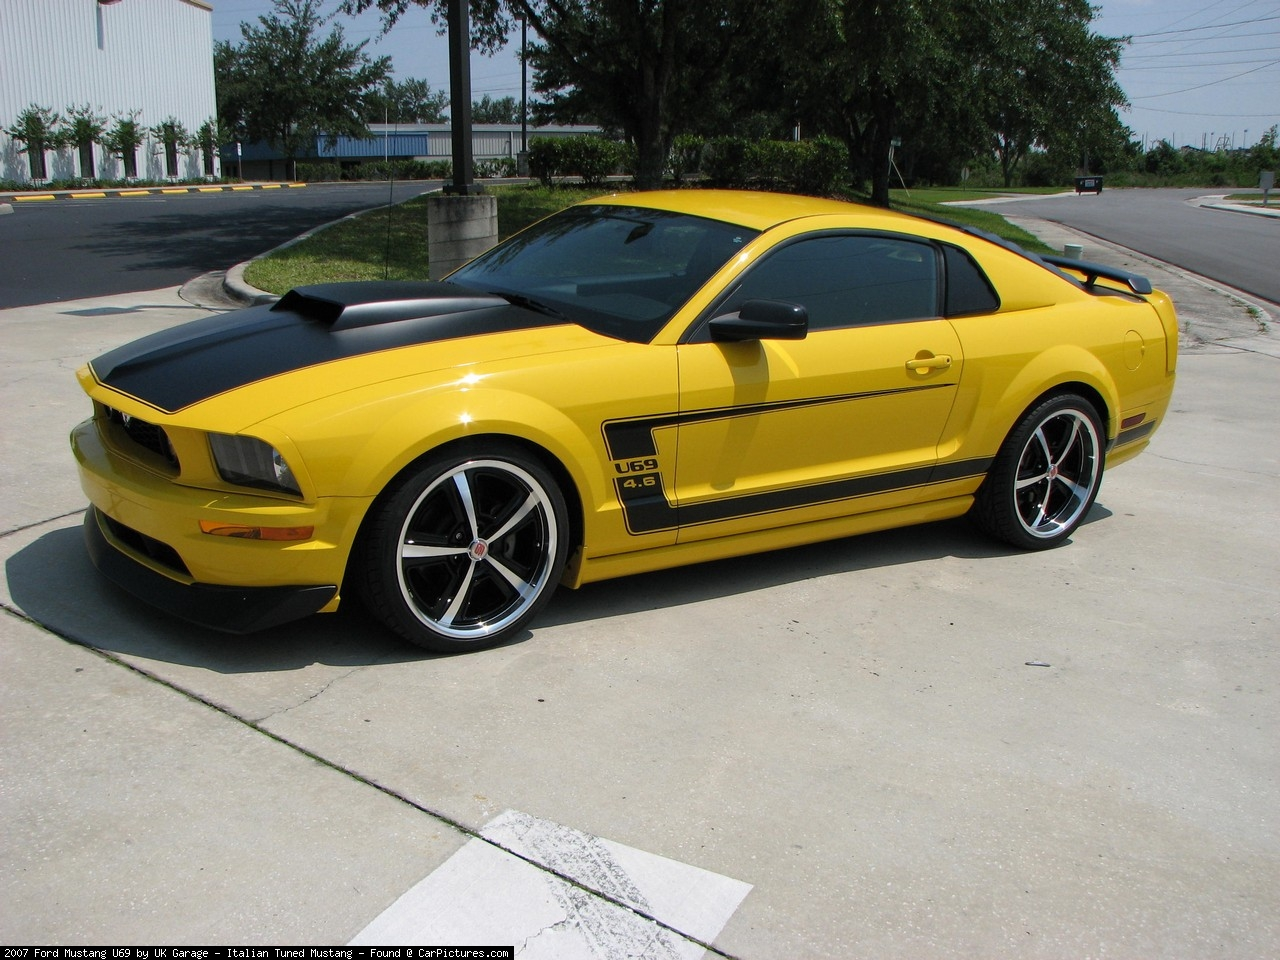 2007_Ford_Mustang_U69_by_UK_Garage_Italian_Tuned_Mustang_A_full.jpeg